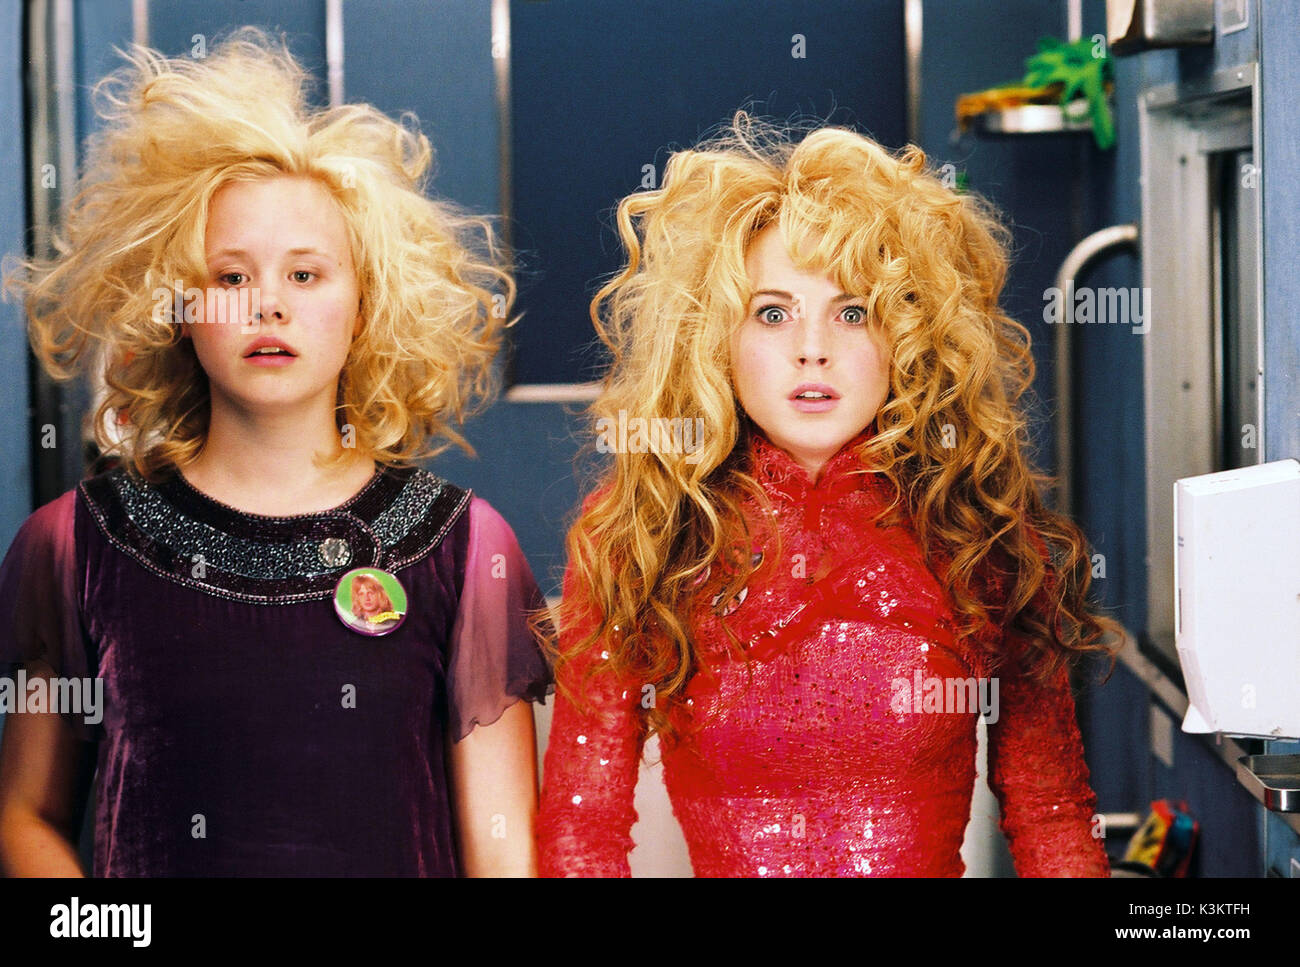 CONFESSIONS OF A TEENAGE DRAMA QUEEN ALISON PILL, LINDSAY LOHAN       Date: 2004